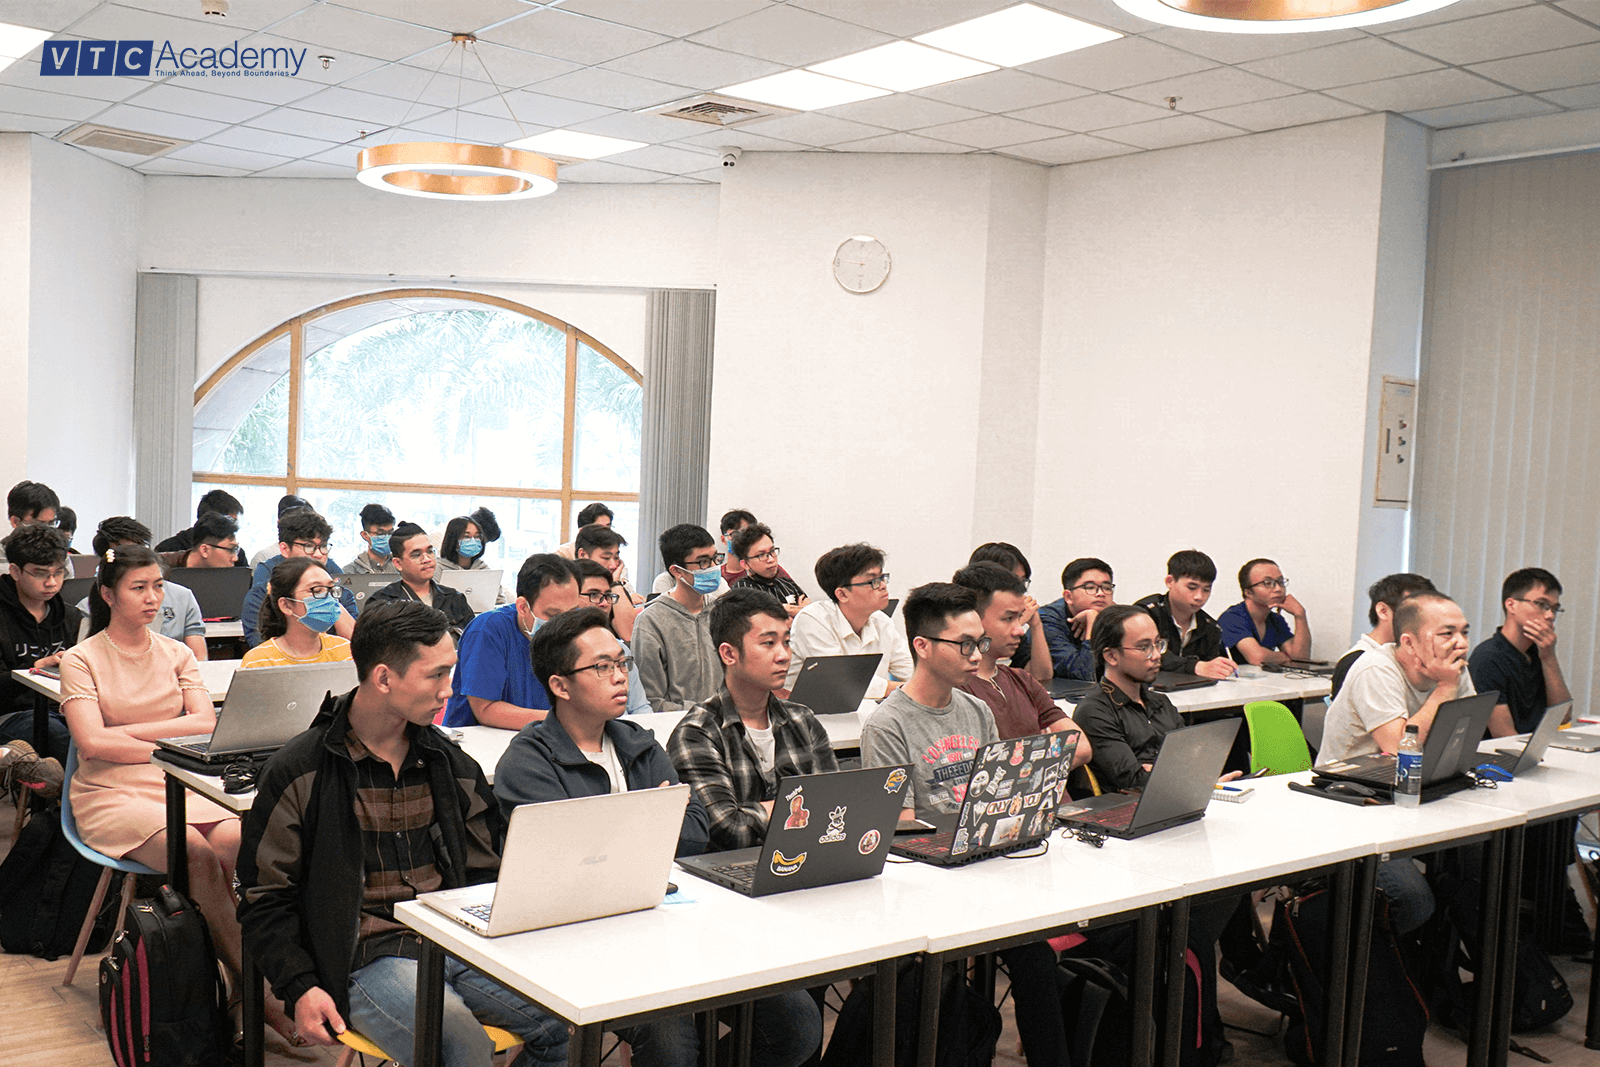 VTC Academy organized many activities to learn about Artificial Intelligence (AI) in Ho Chi Minh City in March 2021